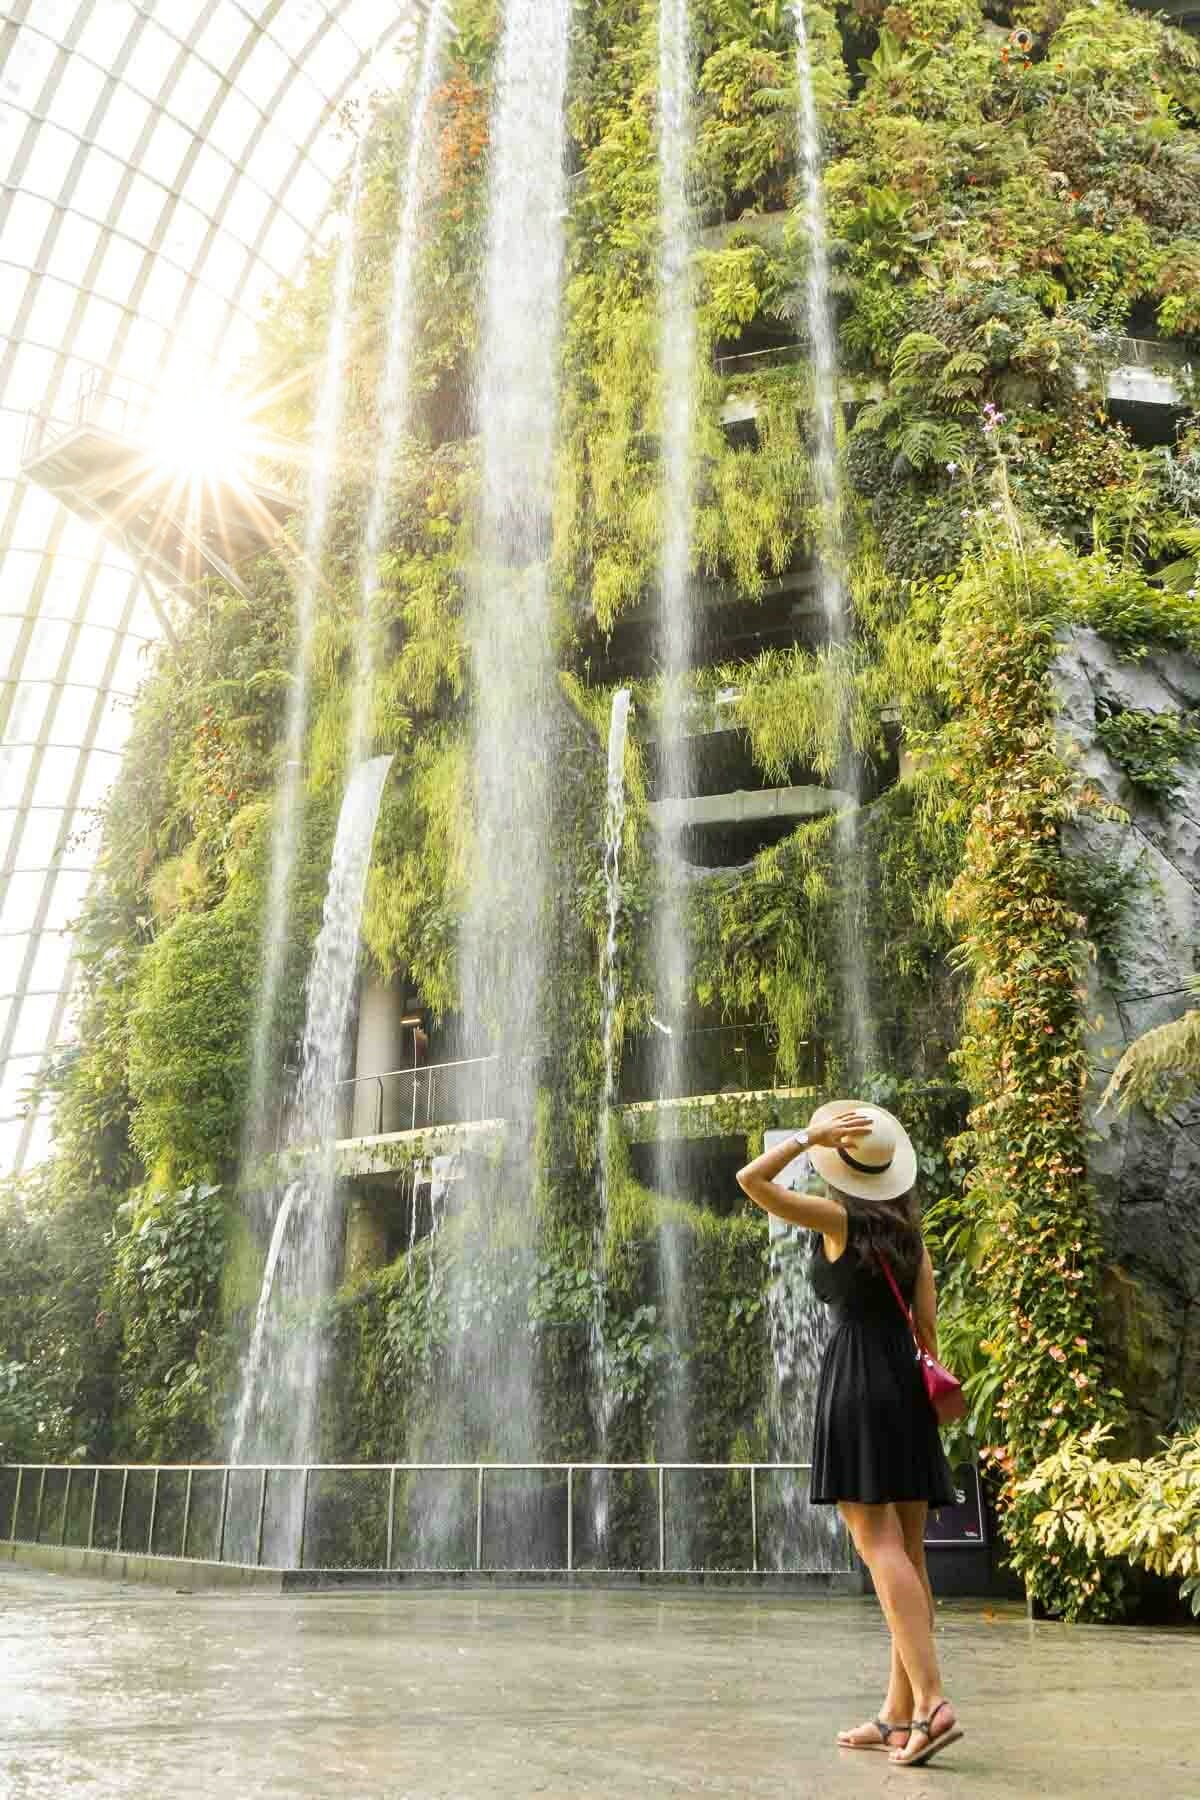 Girl in a black dress standing in fron of an indoor waterfall in the Cloud Forest in Singapore